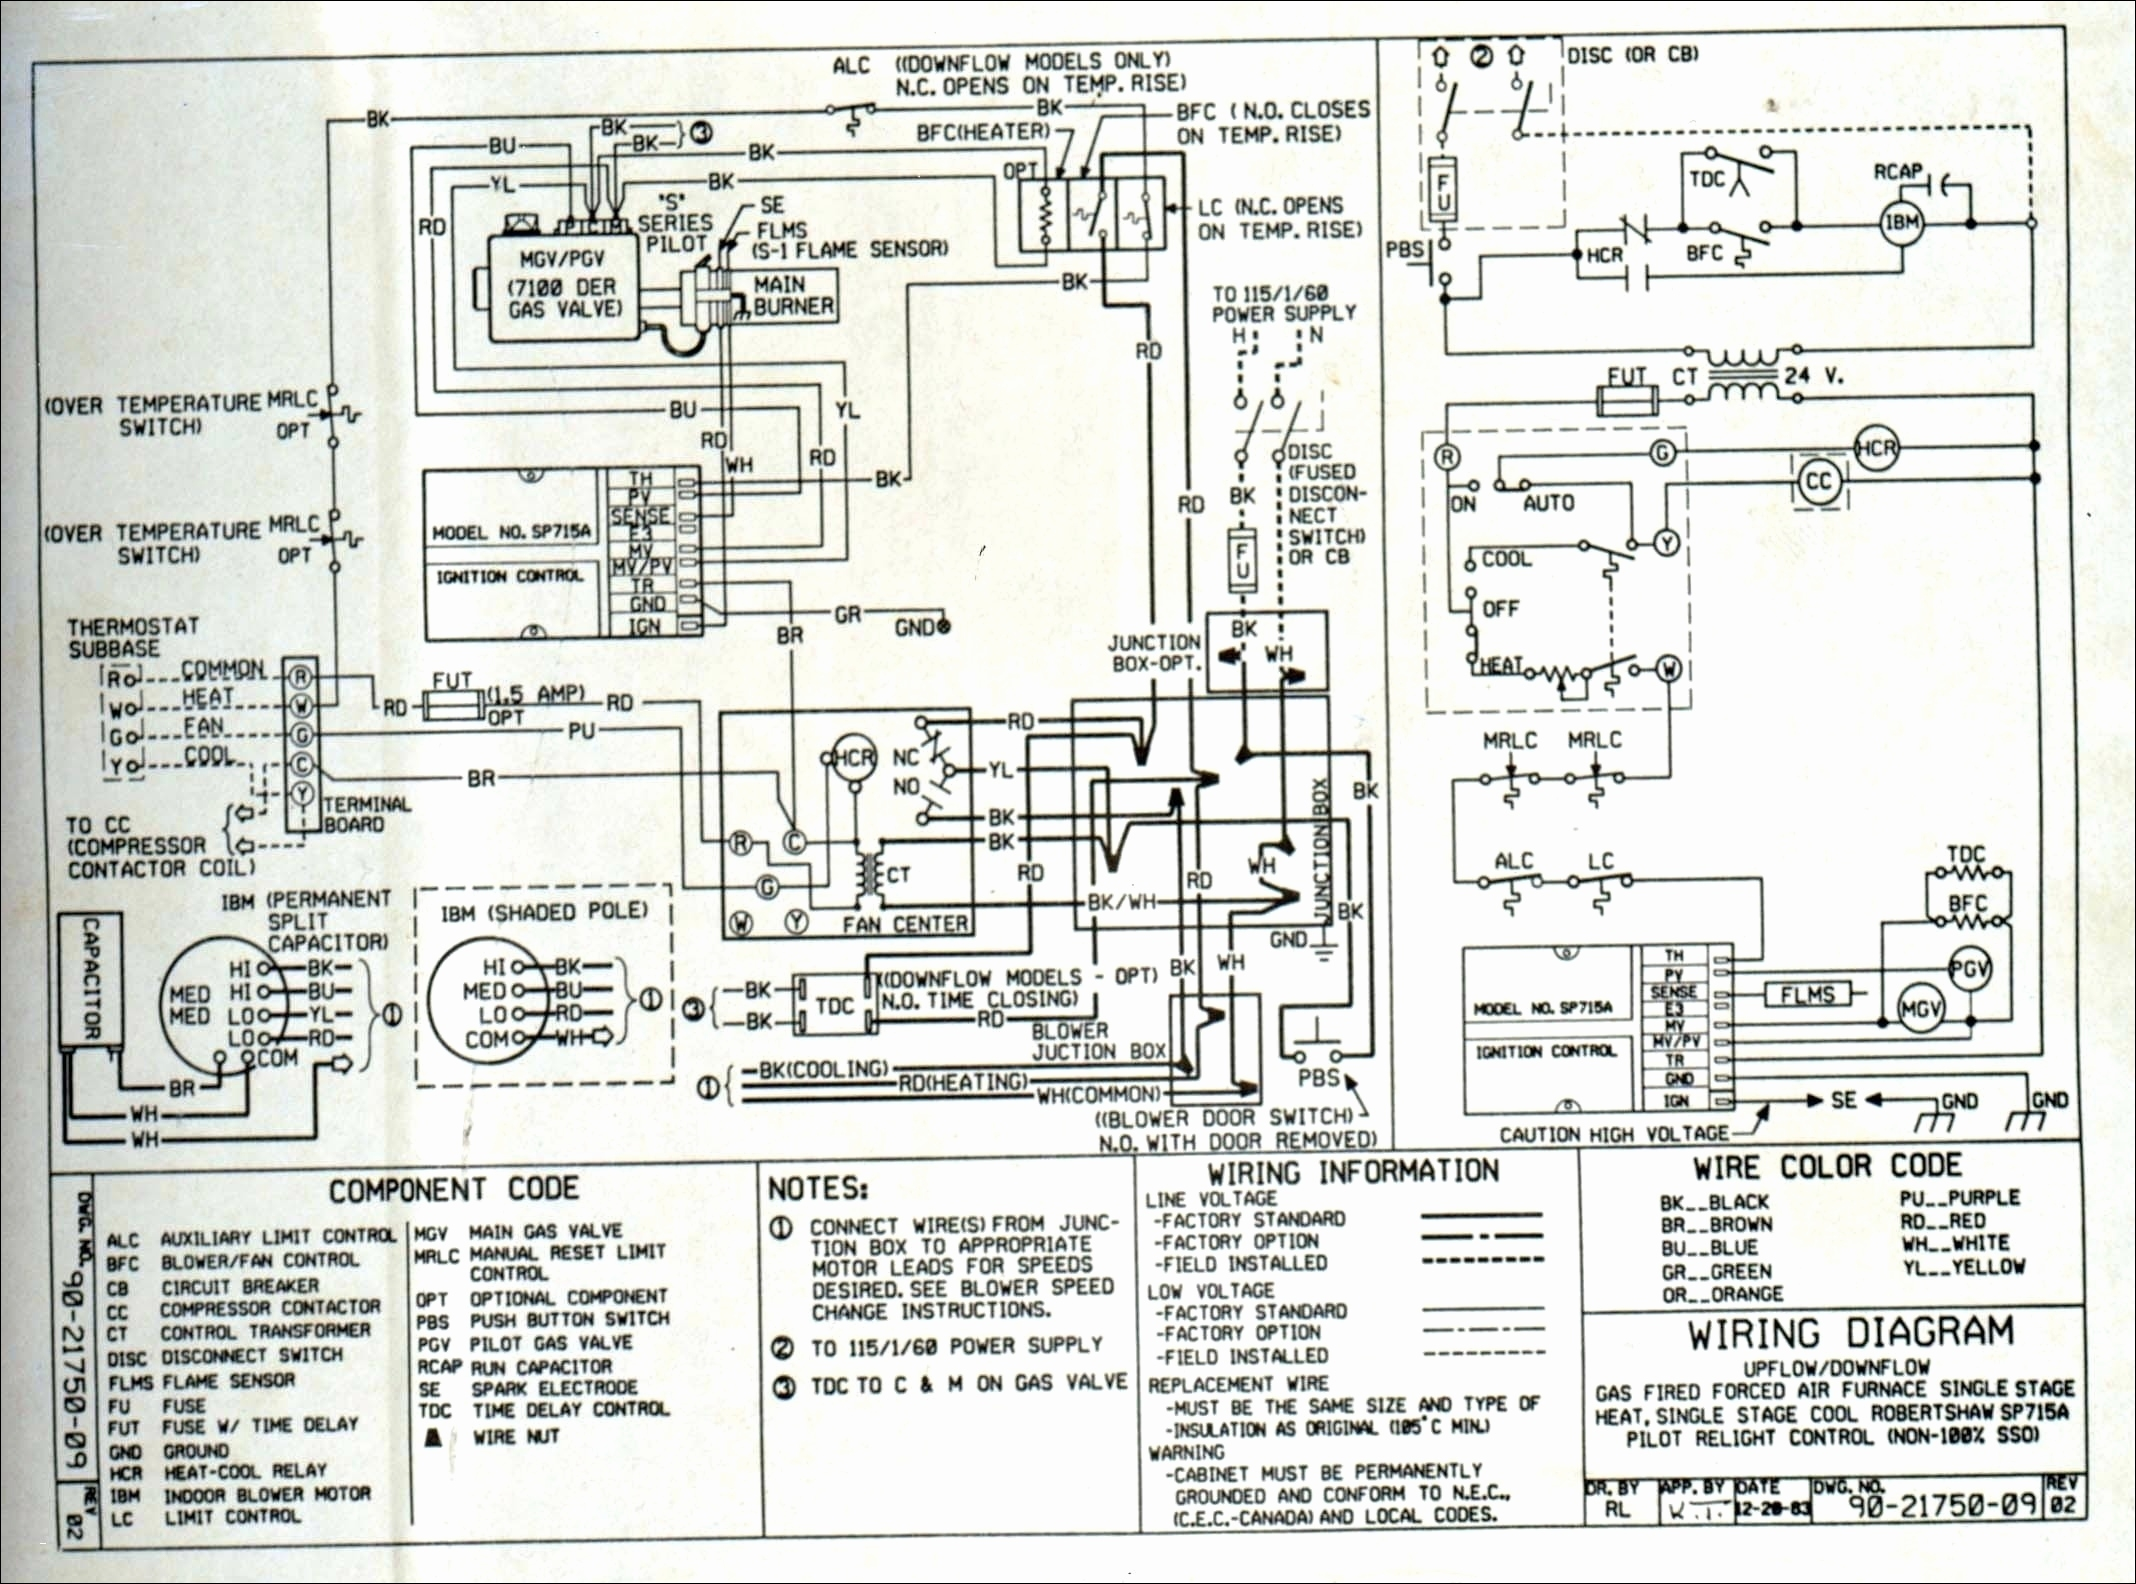 7899 Goodman Ac Wiring Diagram | ePANEL Digital Books on goodman diagram fatigue, goodman calculation diagram, goodman gas furnace diagram, goodman furnace thermostat wiring, goodman ac units, air handler diagram, goodman air handler thermostat wiring, heating and ac diagram, wiring a room diagram, goodman condenser wiring-diagram, goodman heat pump parts diagram, goodman package units diagram, goodman circuit board diagram, air conditioning heat pump diagram, goodman heat sequencer wire diagram, goodman wiring schematics, goodman air conditioner schematic diagram, goodman mfg wiring diagrams, goodman air handler low voltage connections,